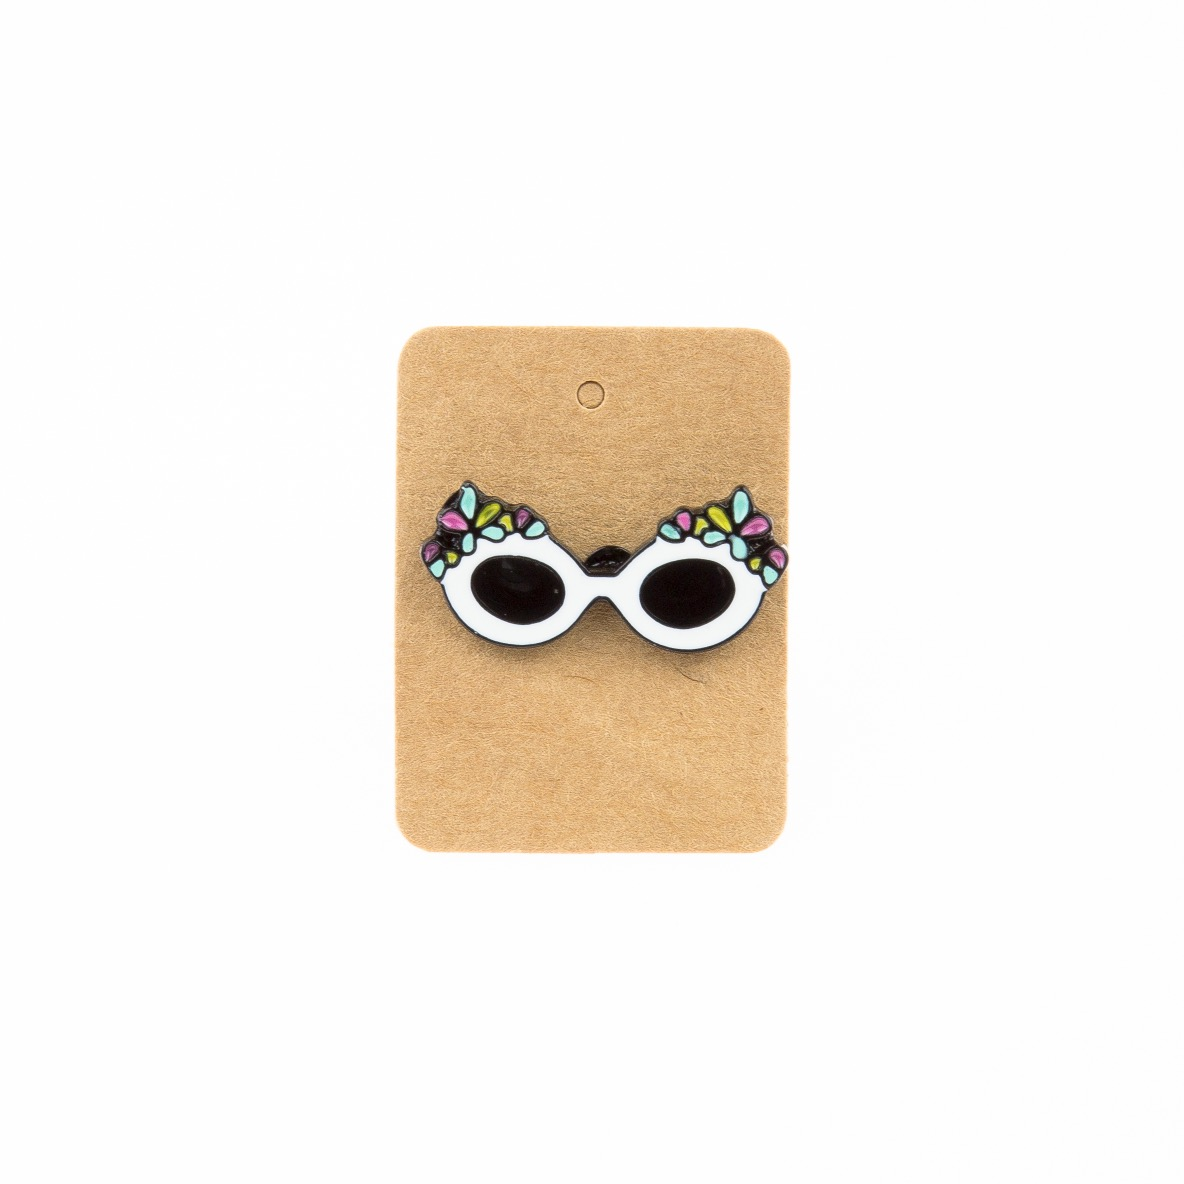 Metal Flowers Sunglass Enamel Pin Badge